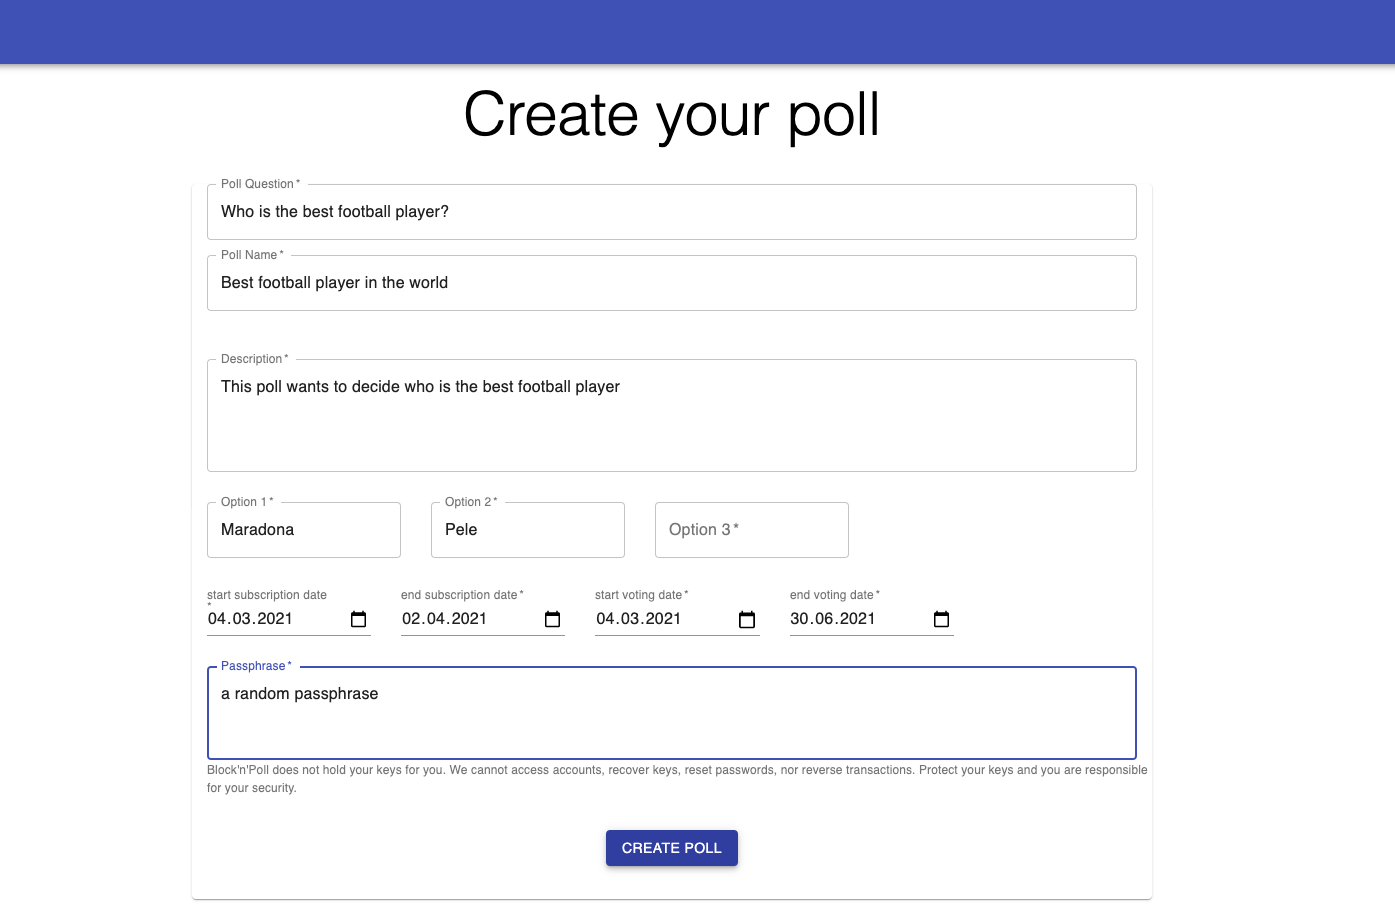 EditorImages/2021/03/08 18:35/poll_creation.png